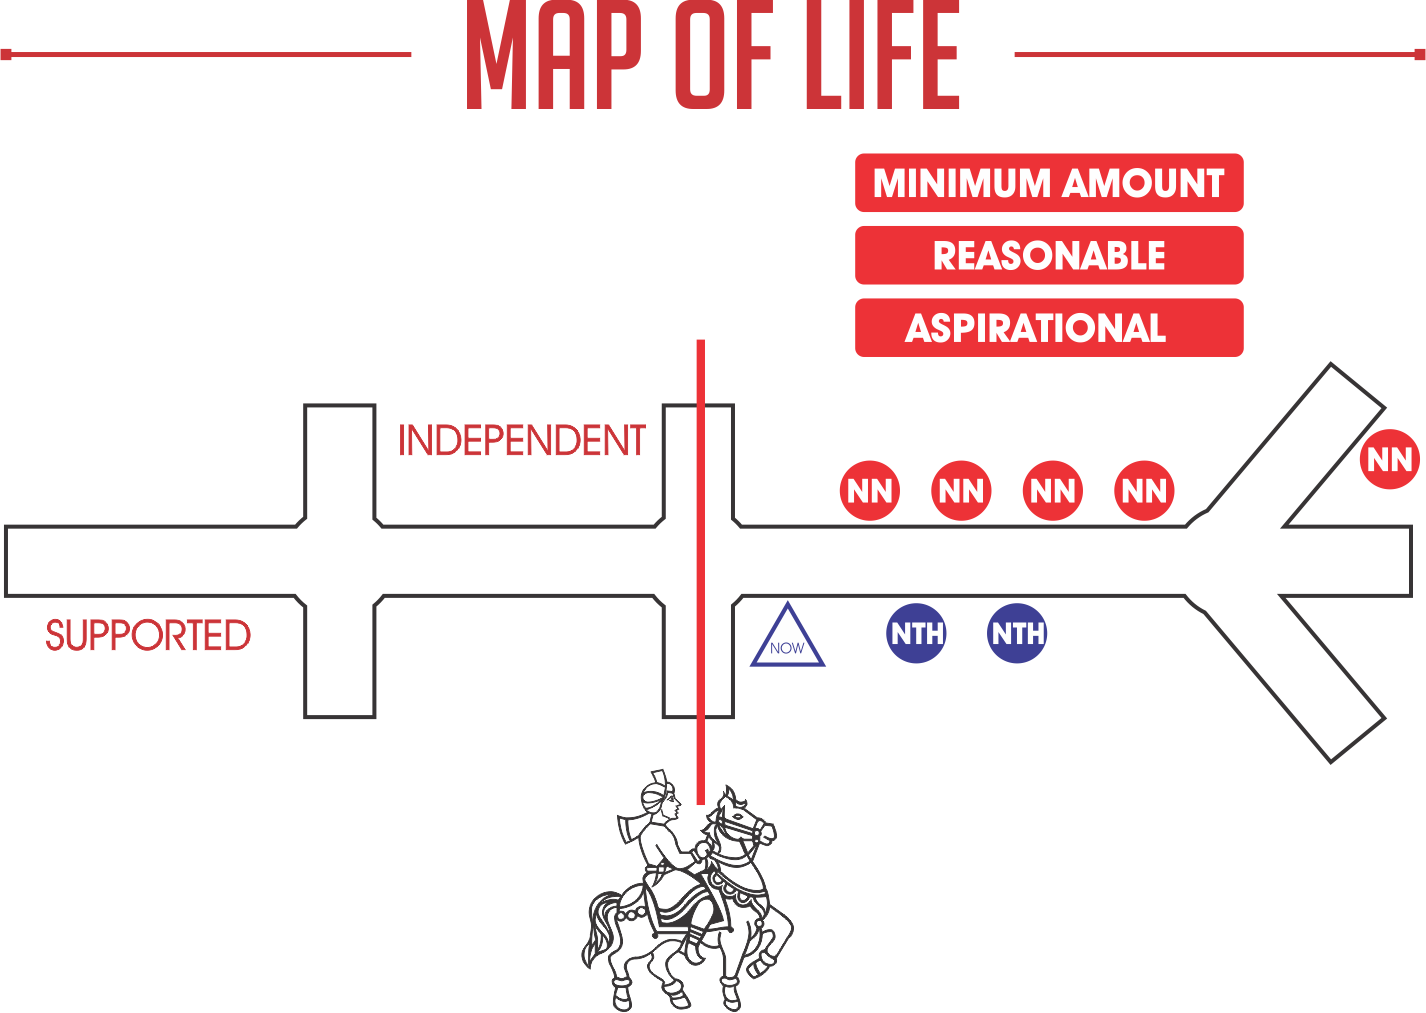 Plan your investments - map of life